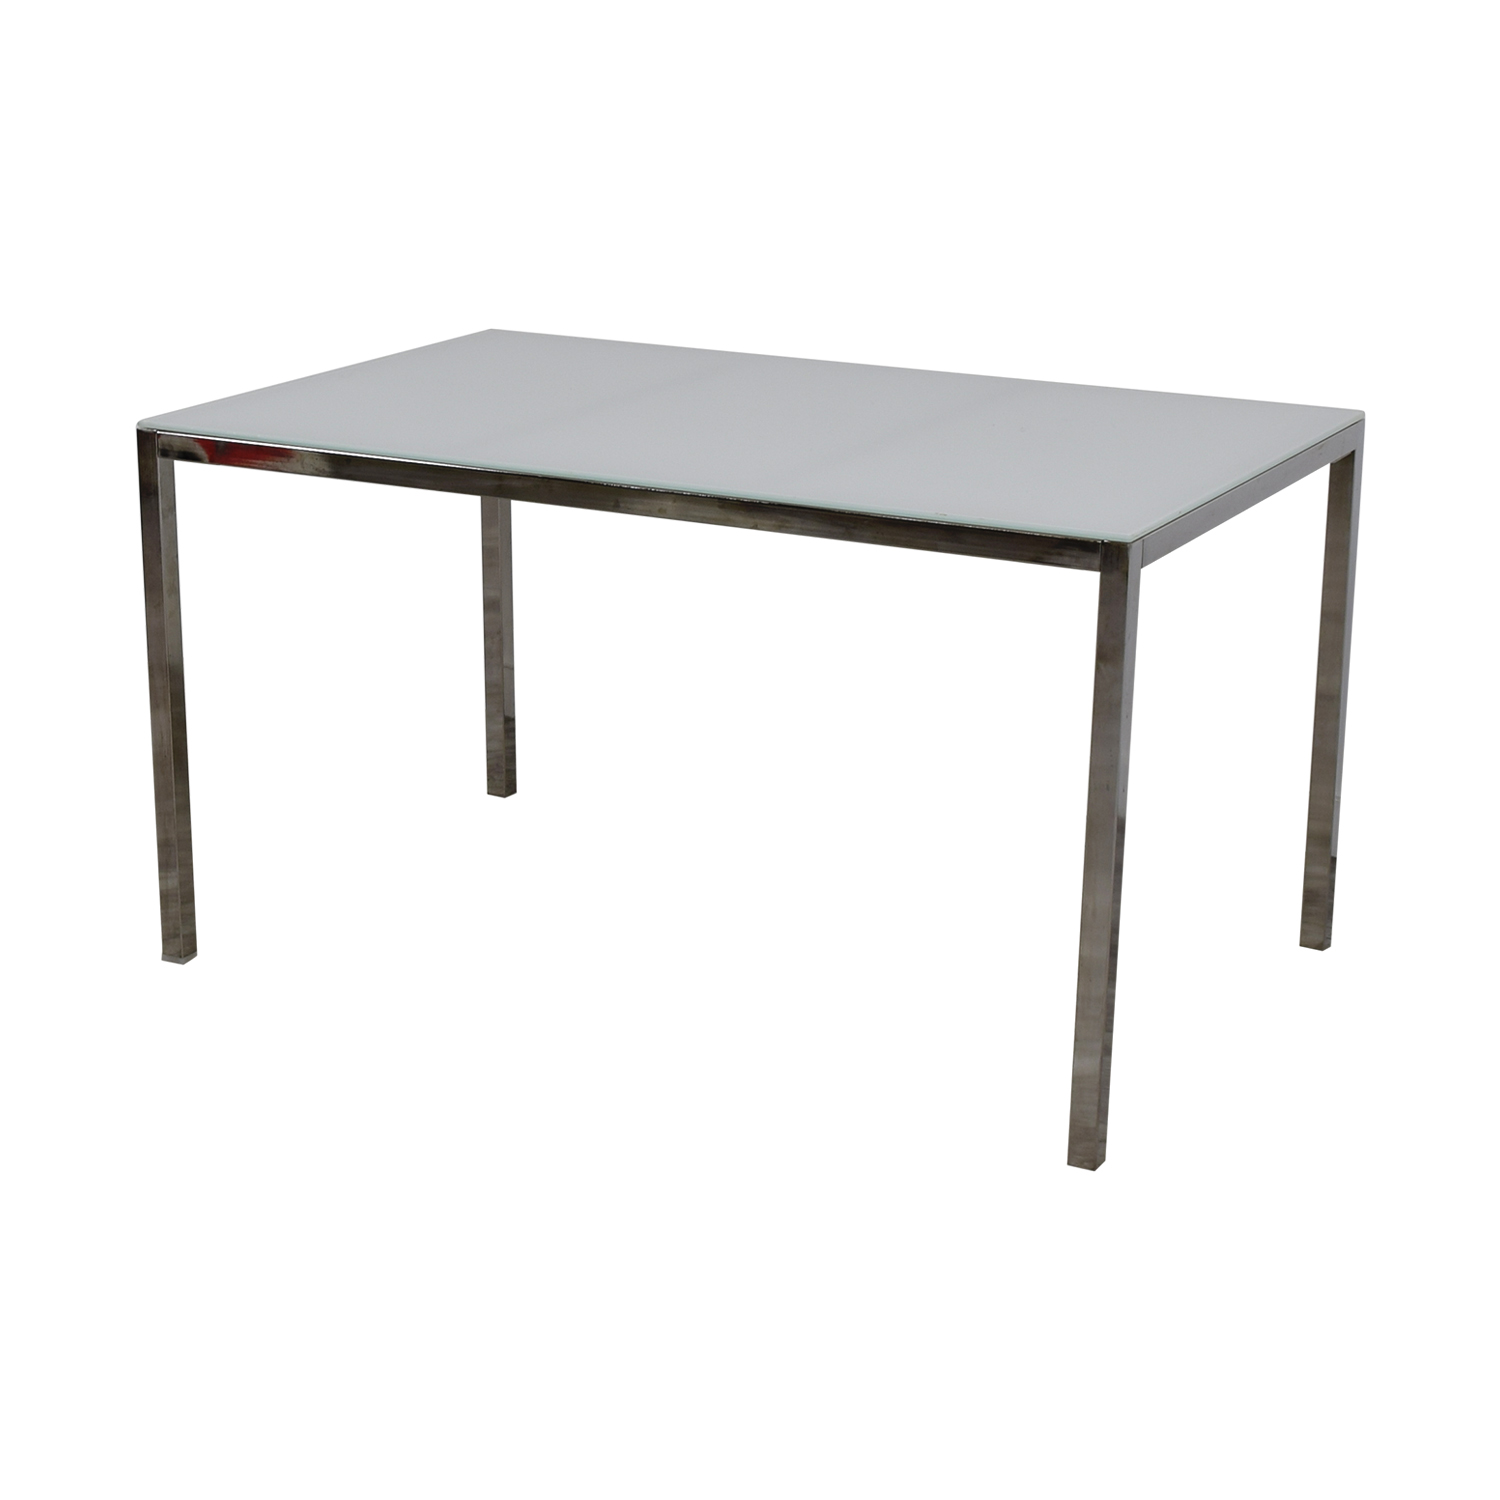 84 off ikea ikea white glass top dining table tables for Ikea glass table tops